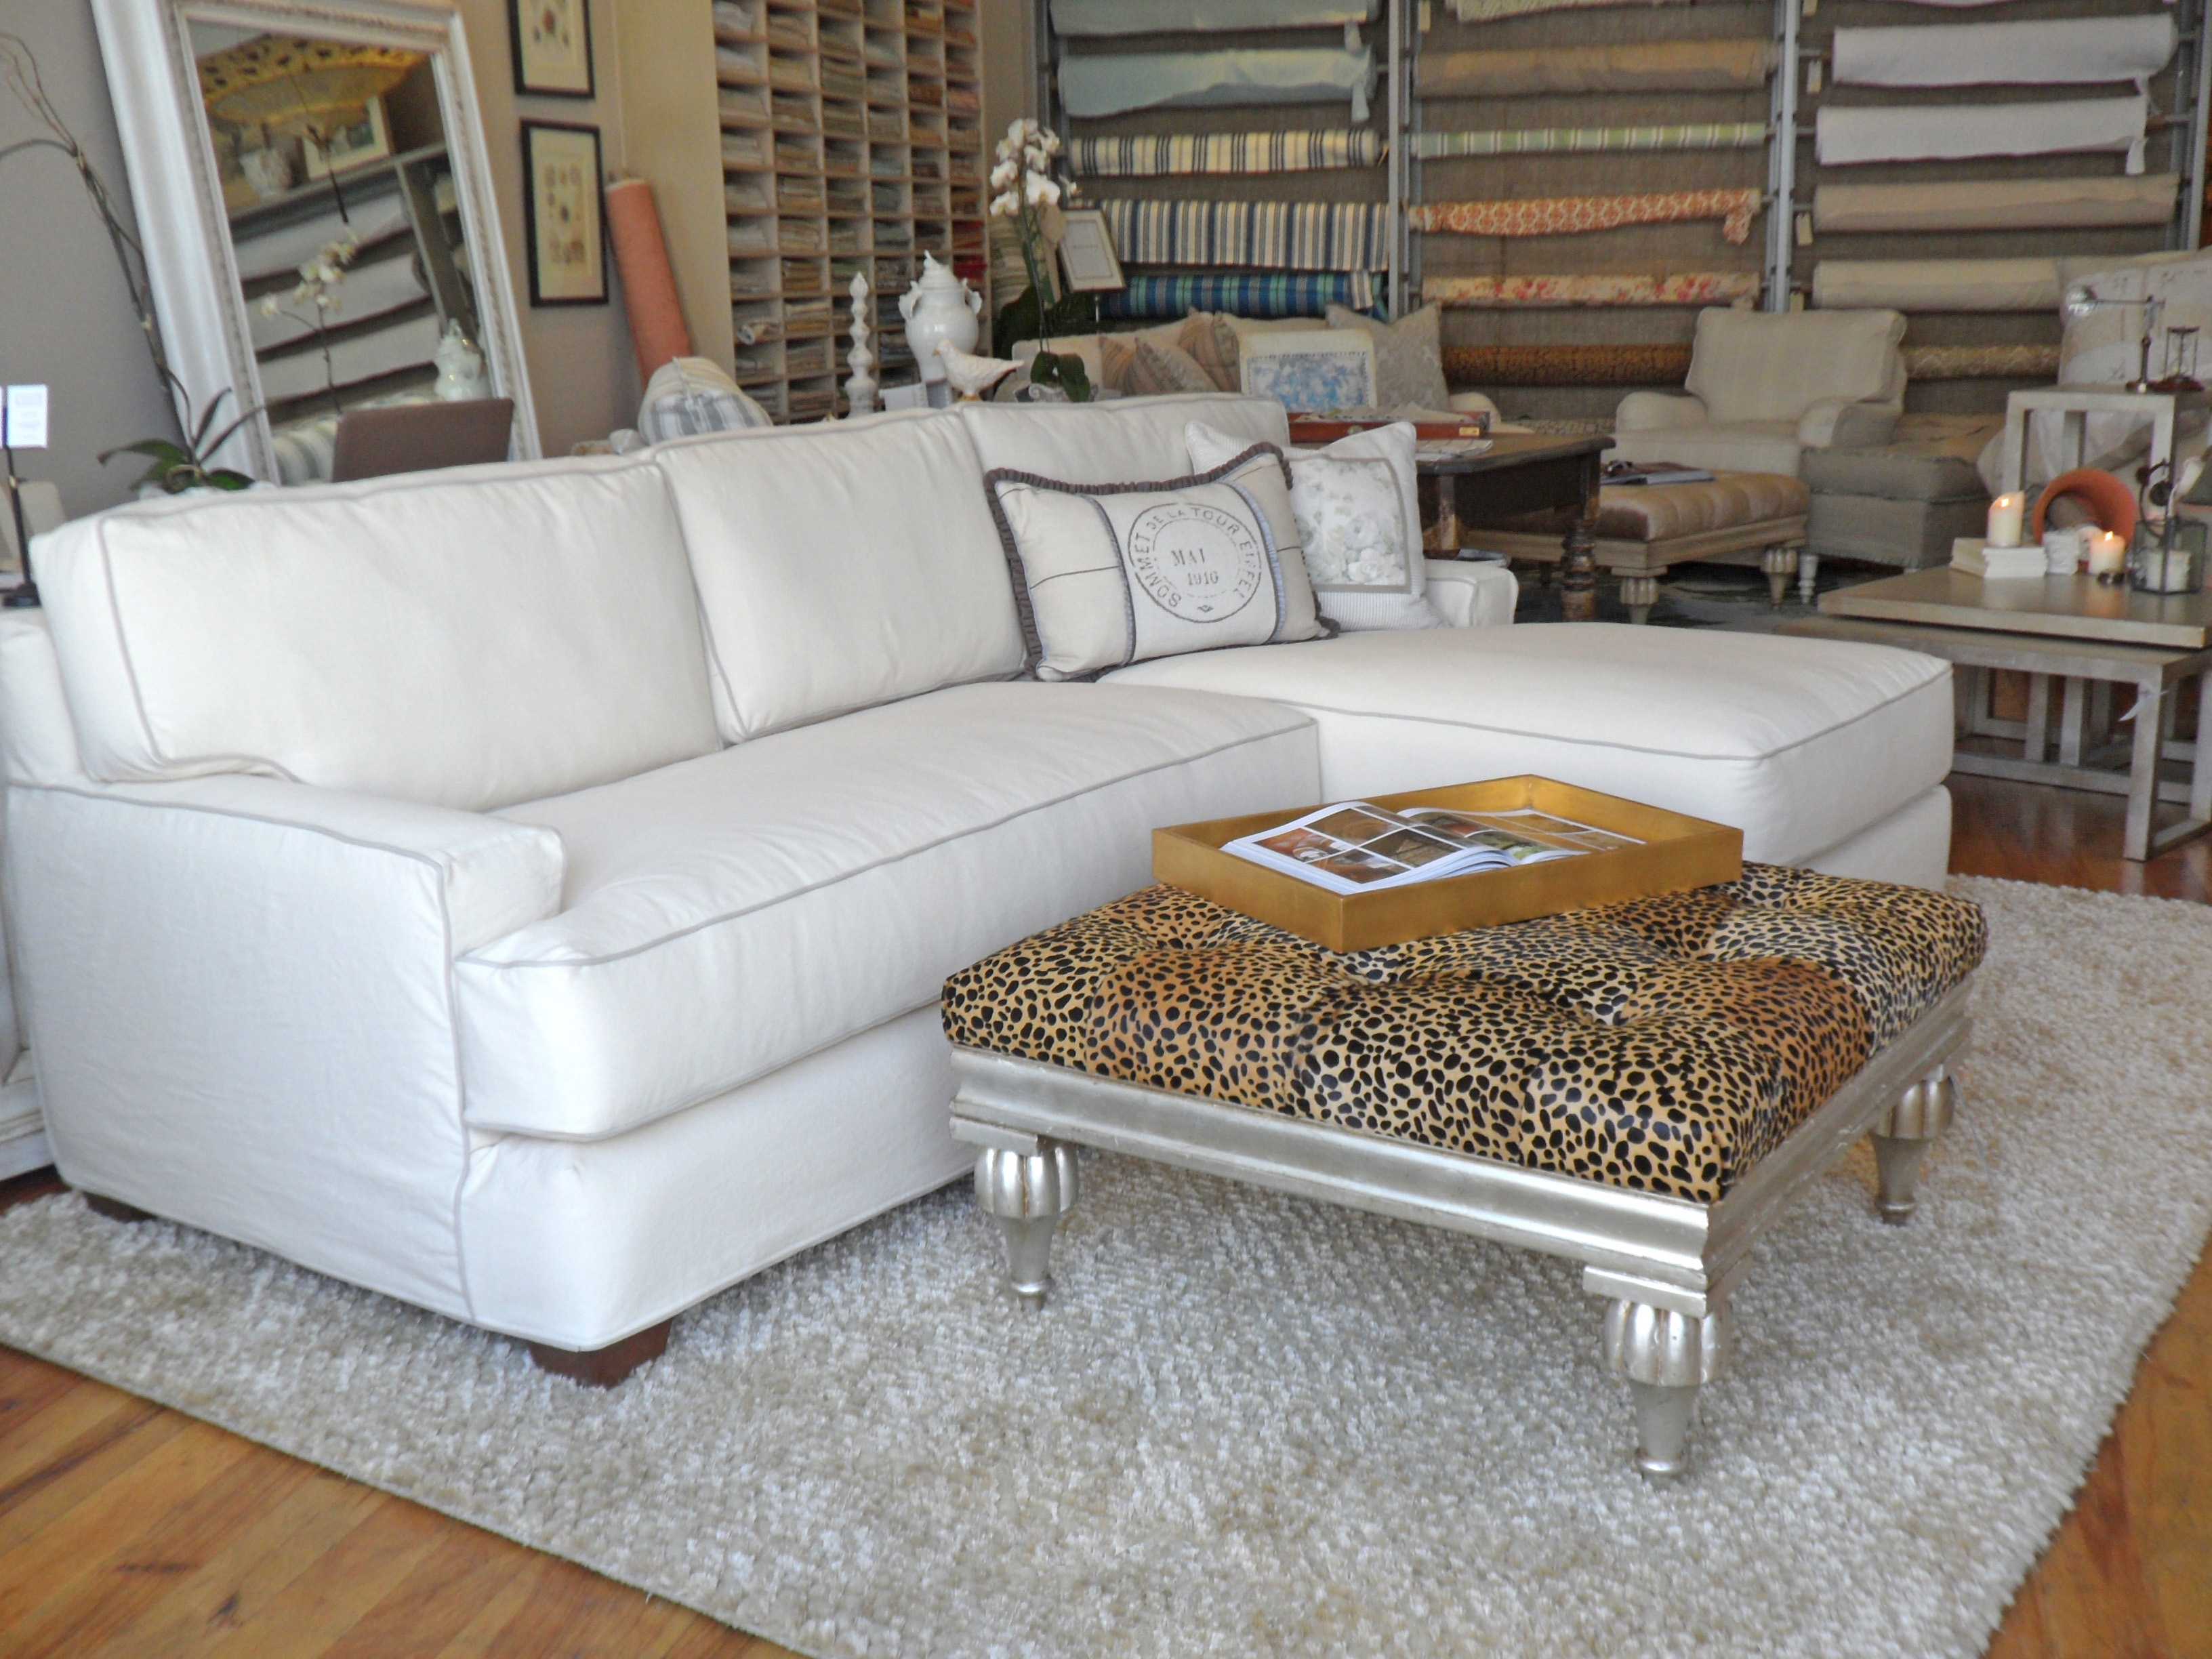 Quatrine White Slipcovered New Yorker Chaise Sectional | Sectionals pertaining to Quatrine Sectional Sofas (Image 10 of 10)